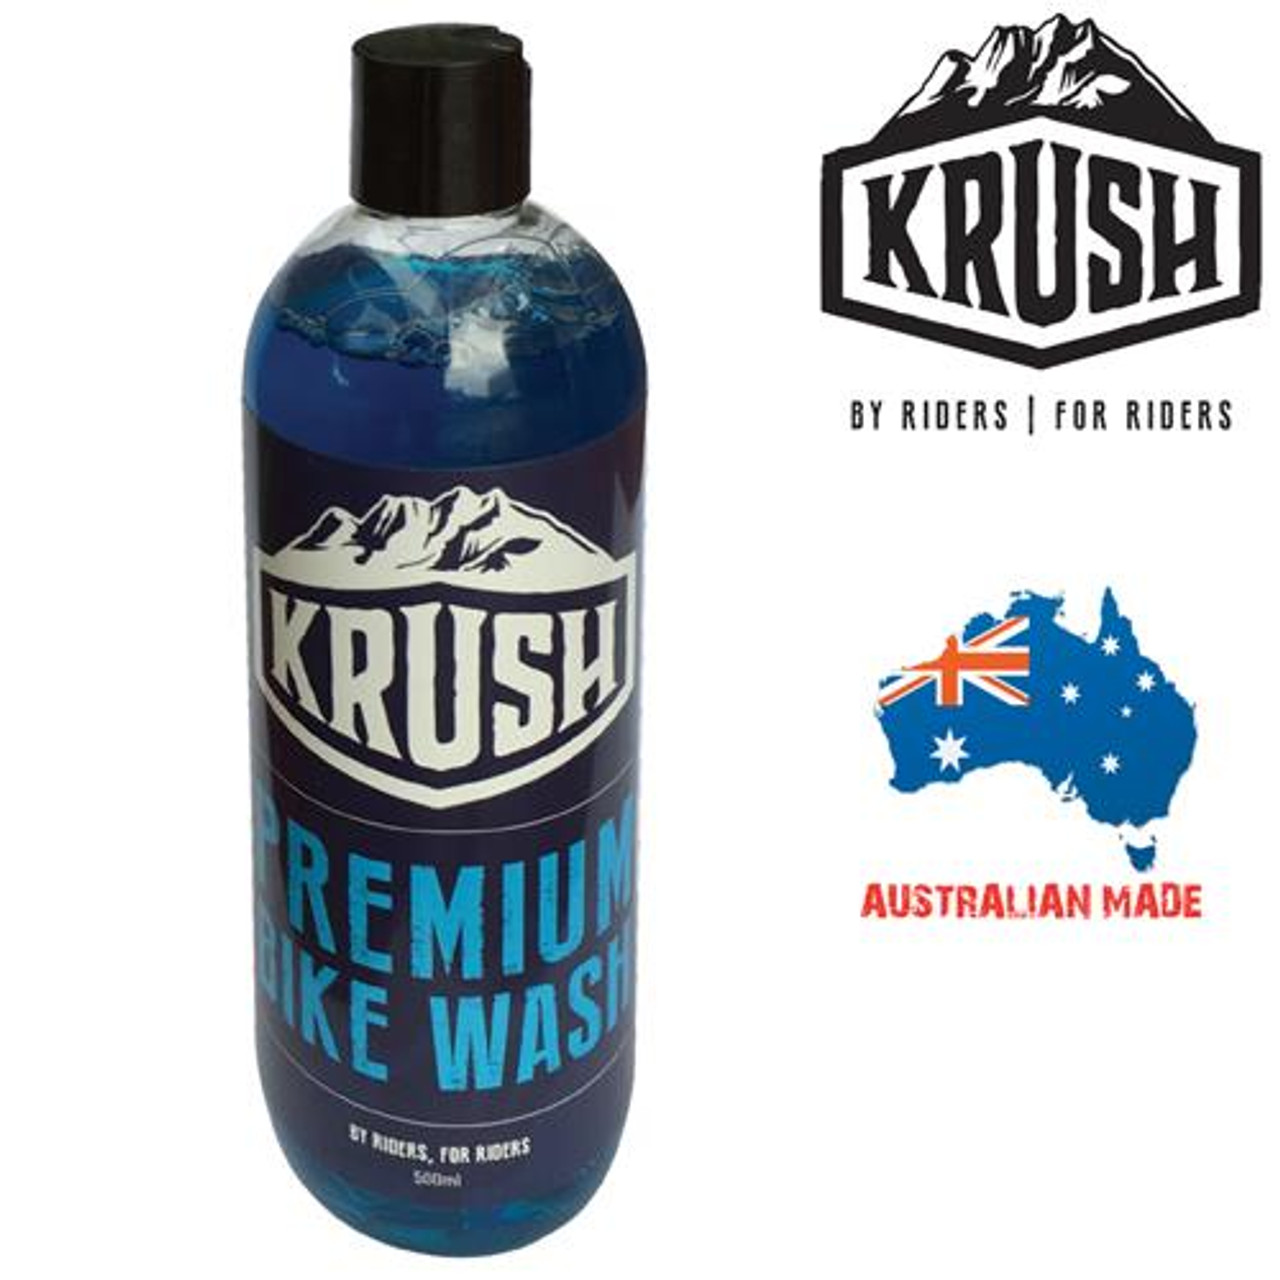 Krush Premium Bike Wash - 500ml